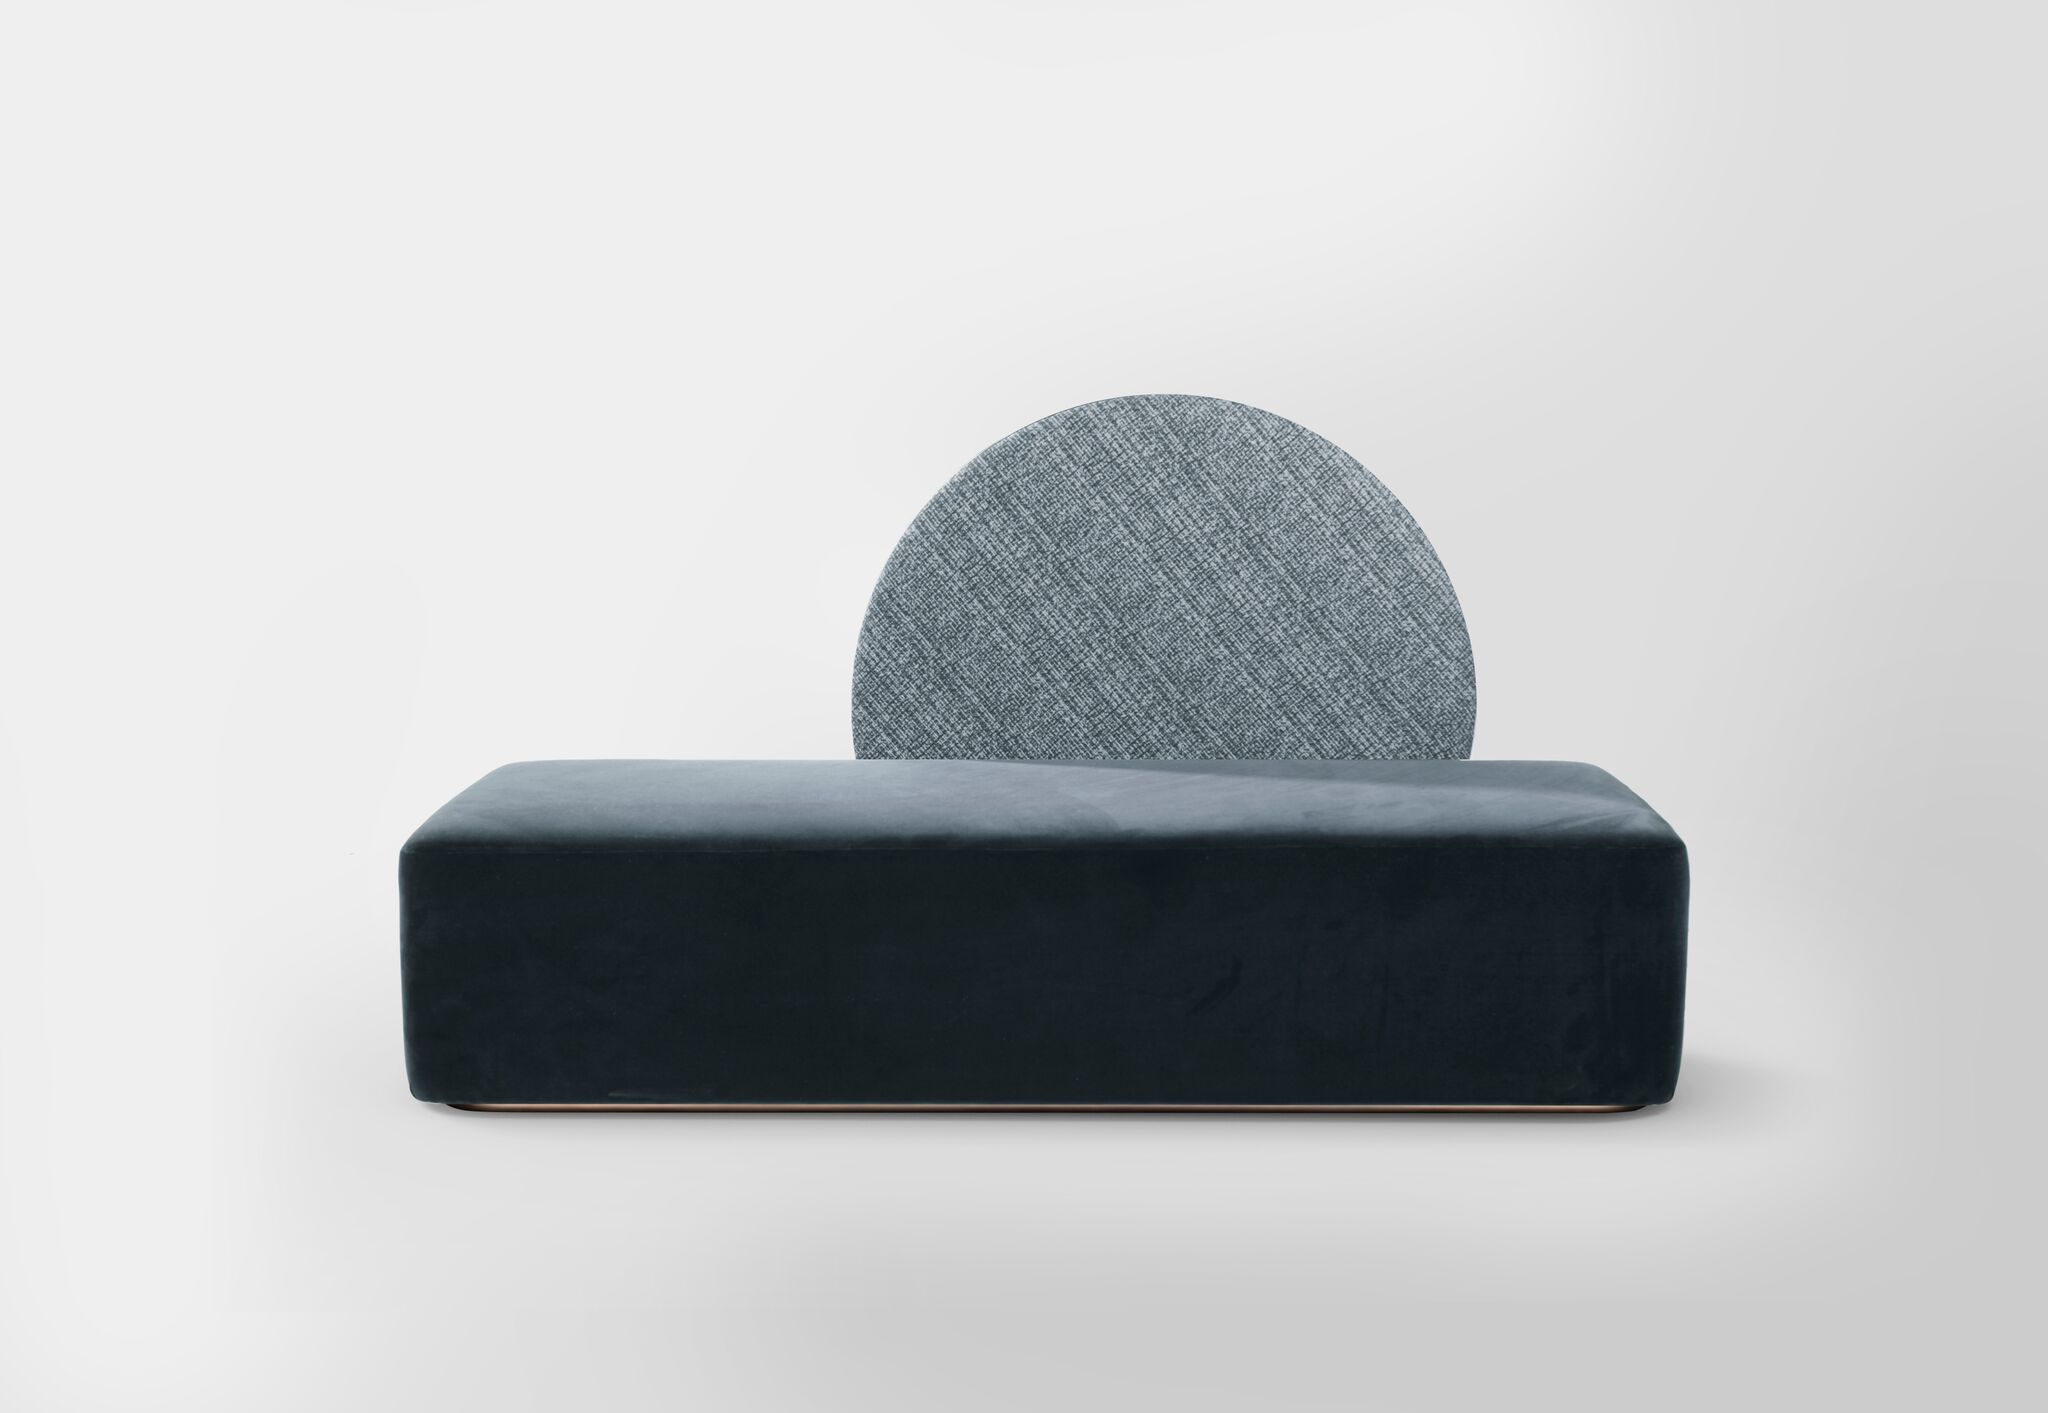 The Horizon Sofa